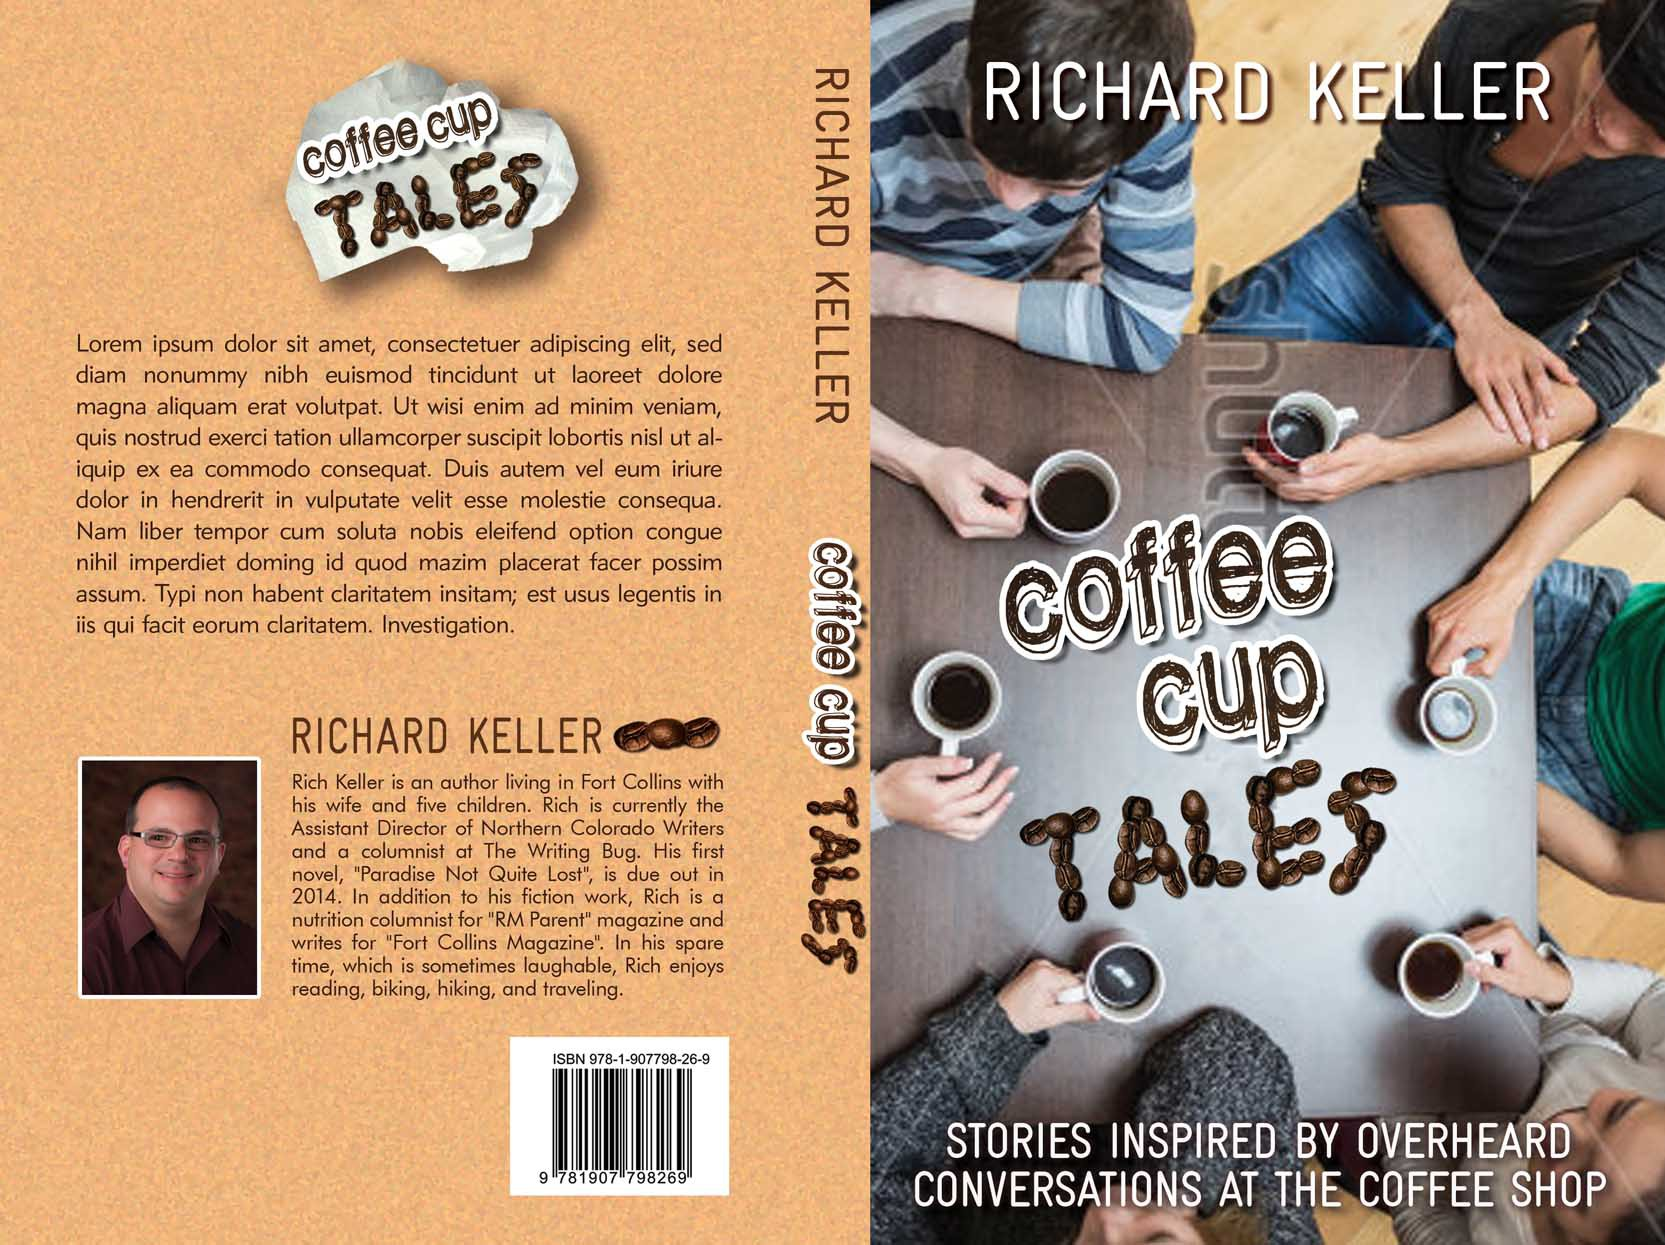 Get your design featured on the first book from Wooden Pants Publishing